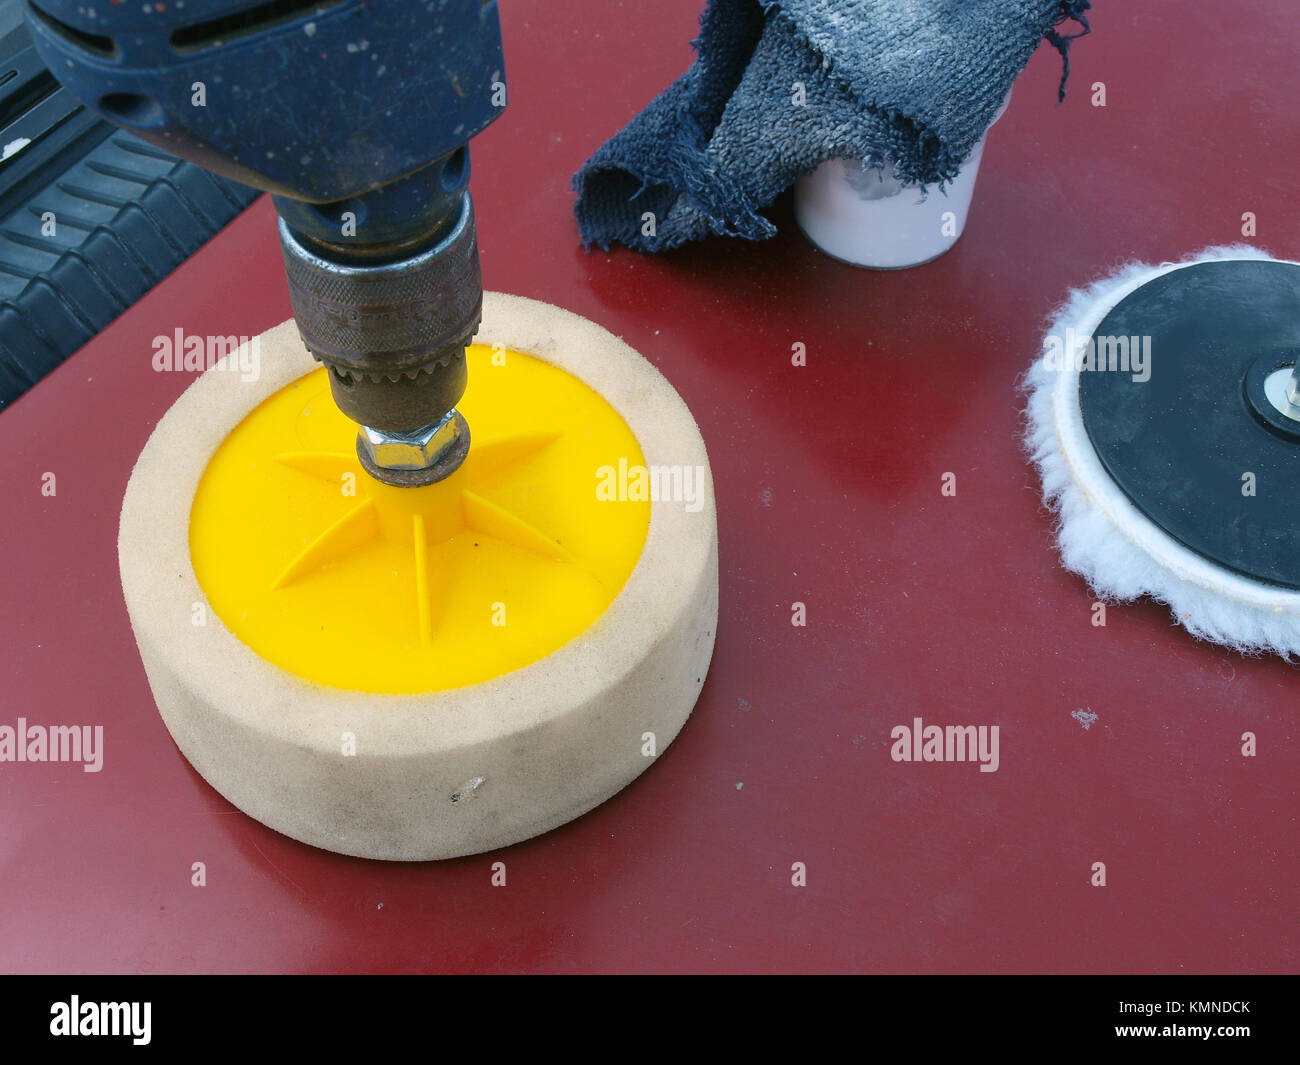 Polishing car body painting by foam rubber disk and electric drill